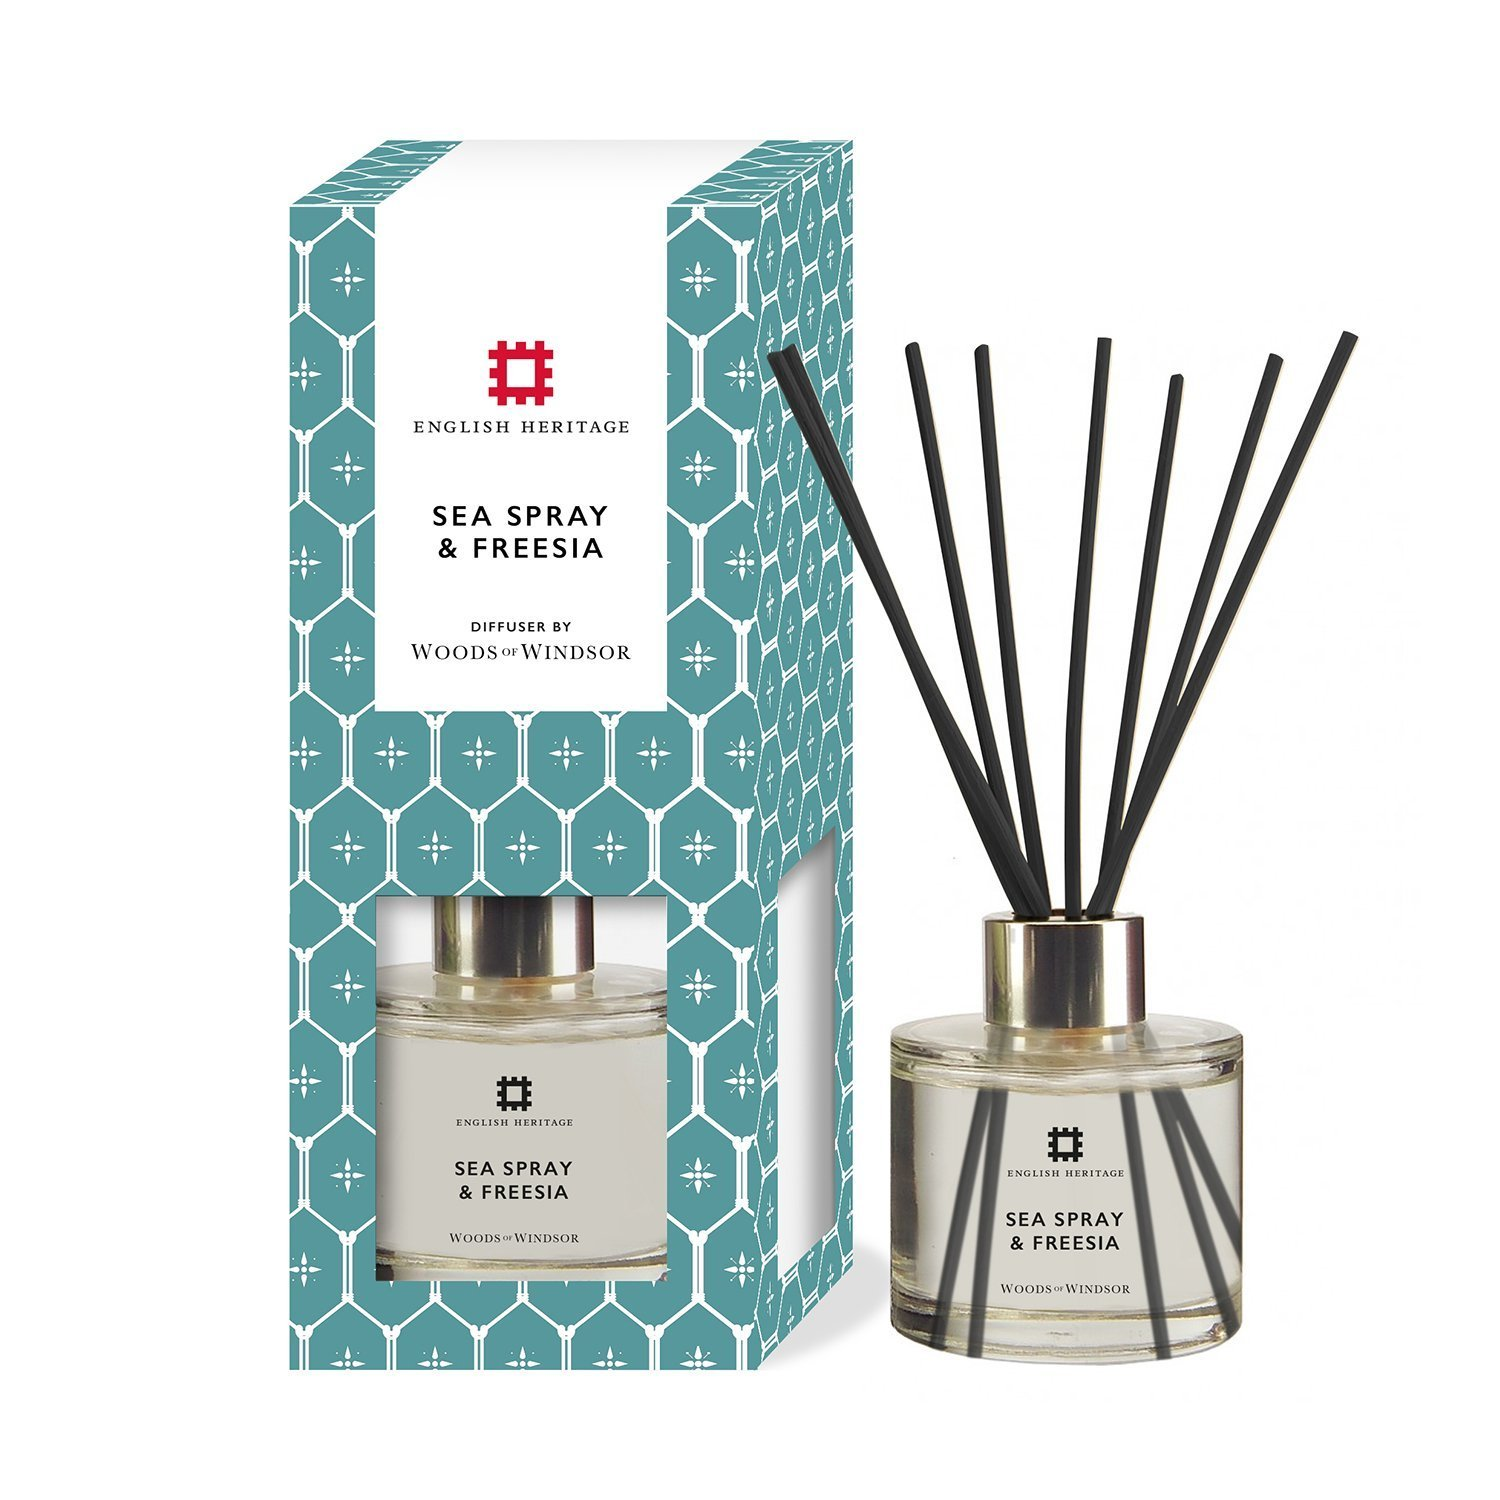 Woods of Windsor English Heritage Sea Spray and Freesia Diffuser W300003-6